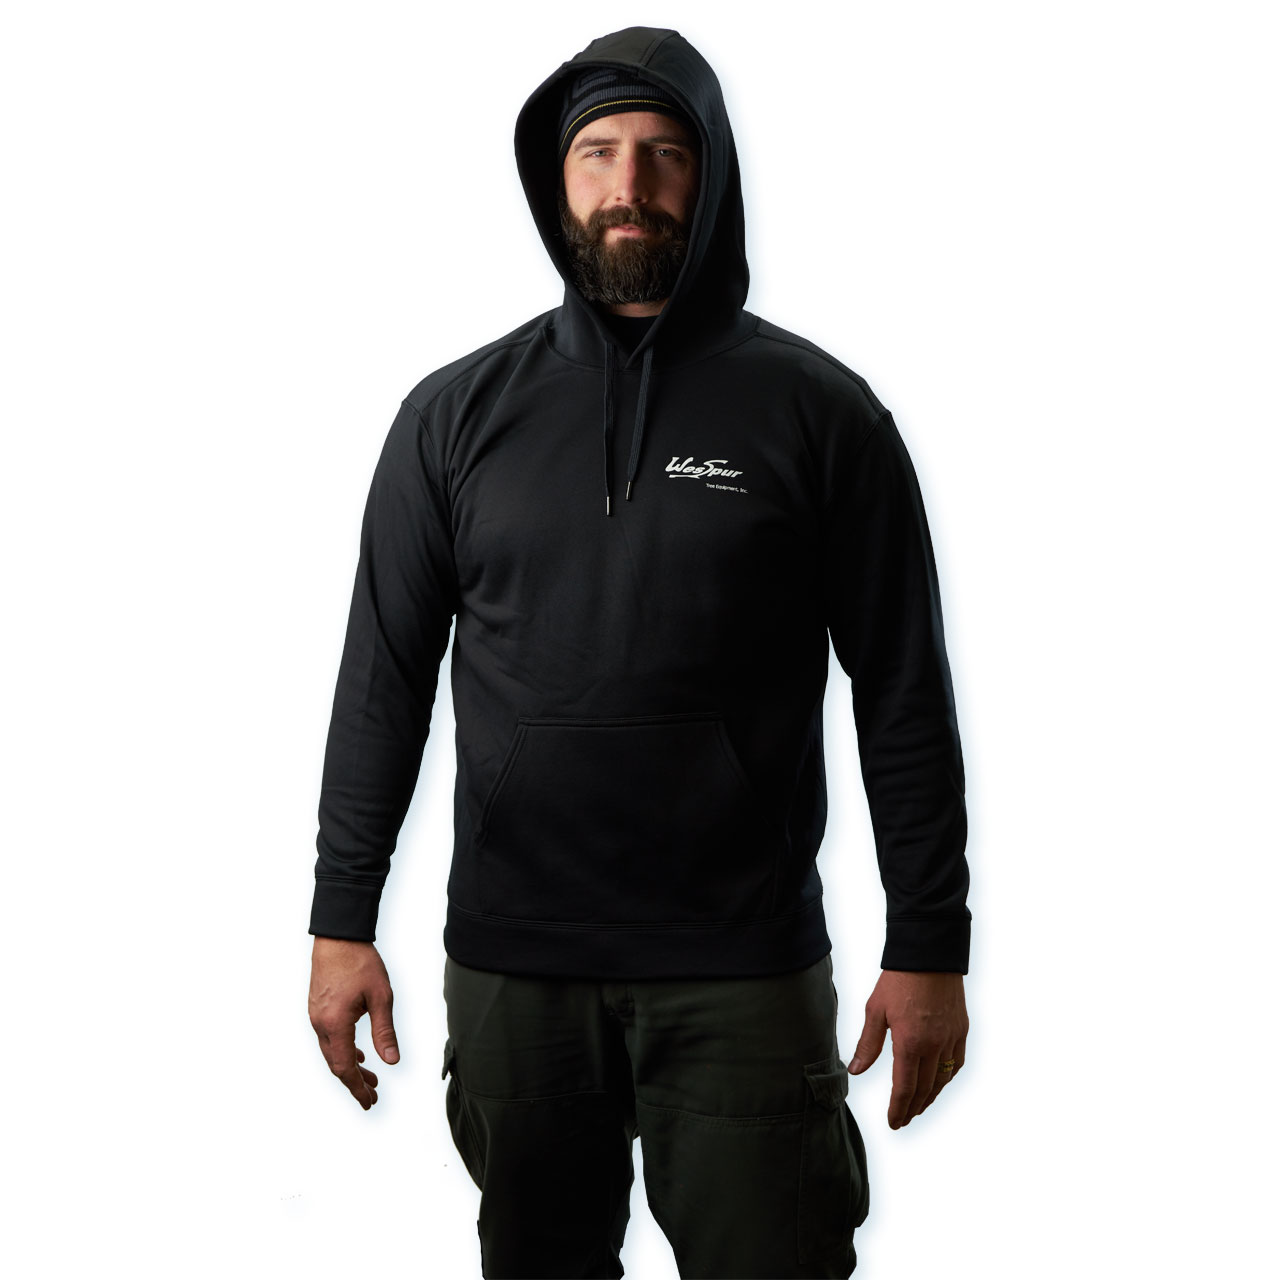 SRS Climber Pullover Hoodie